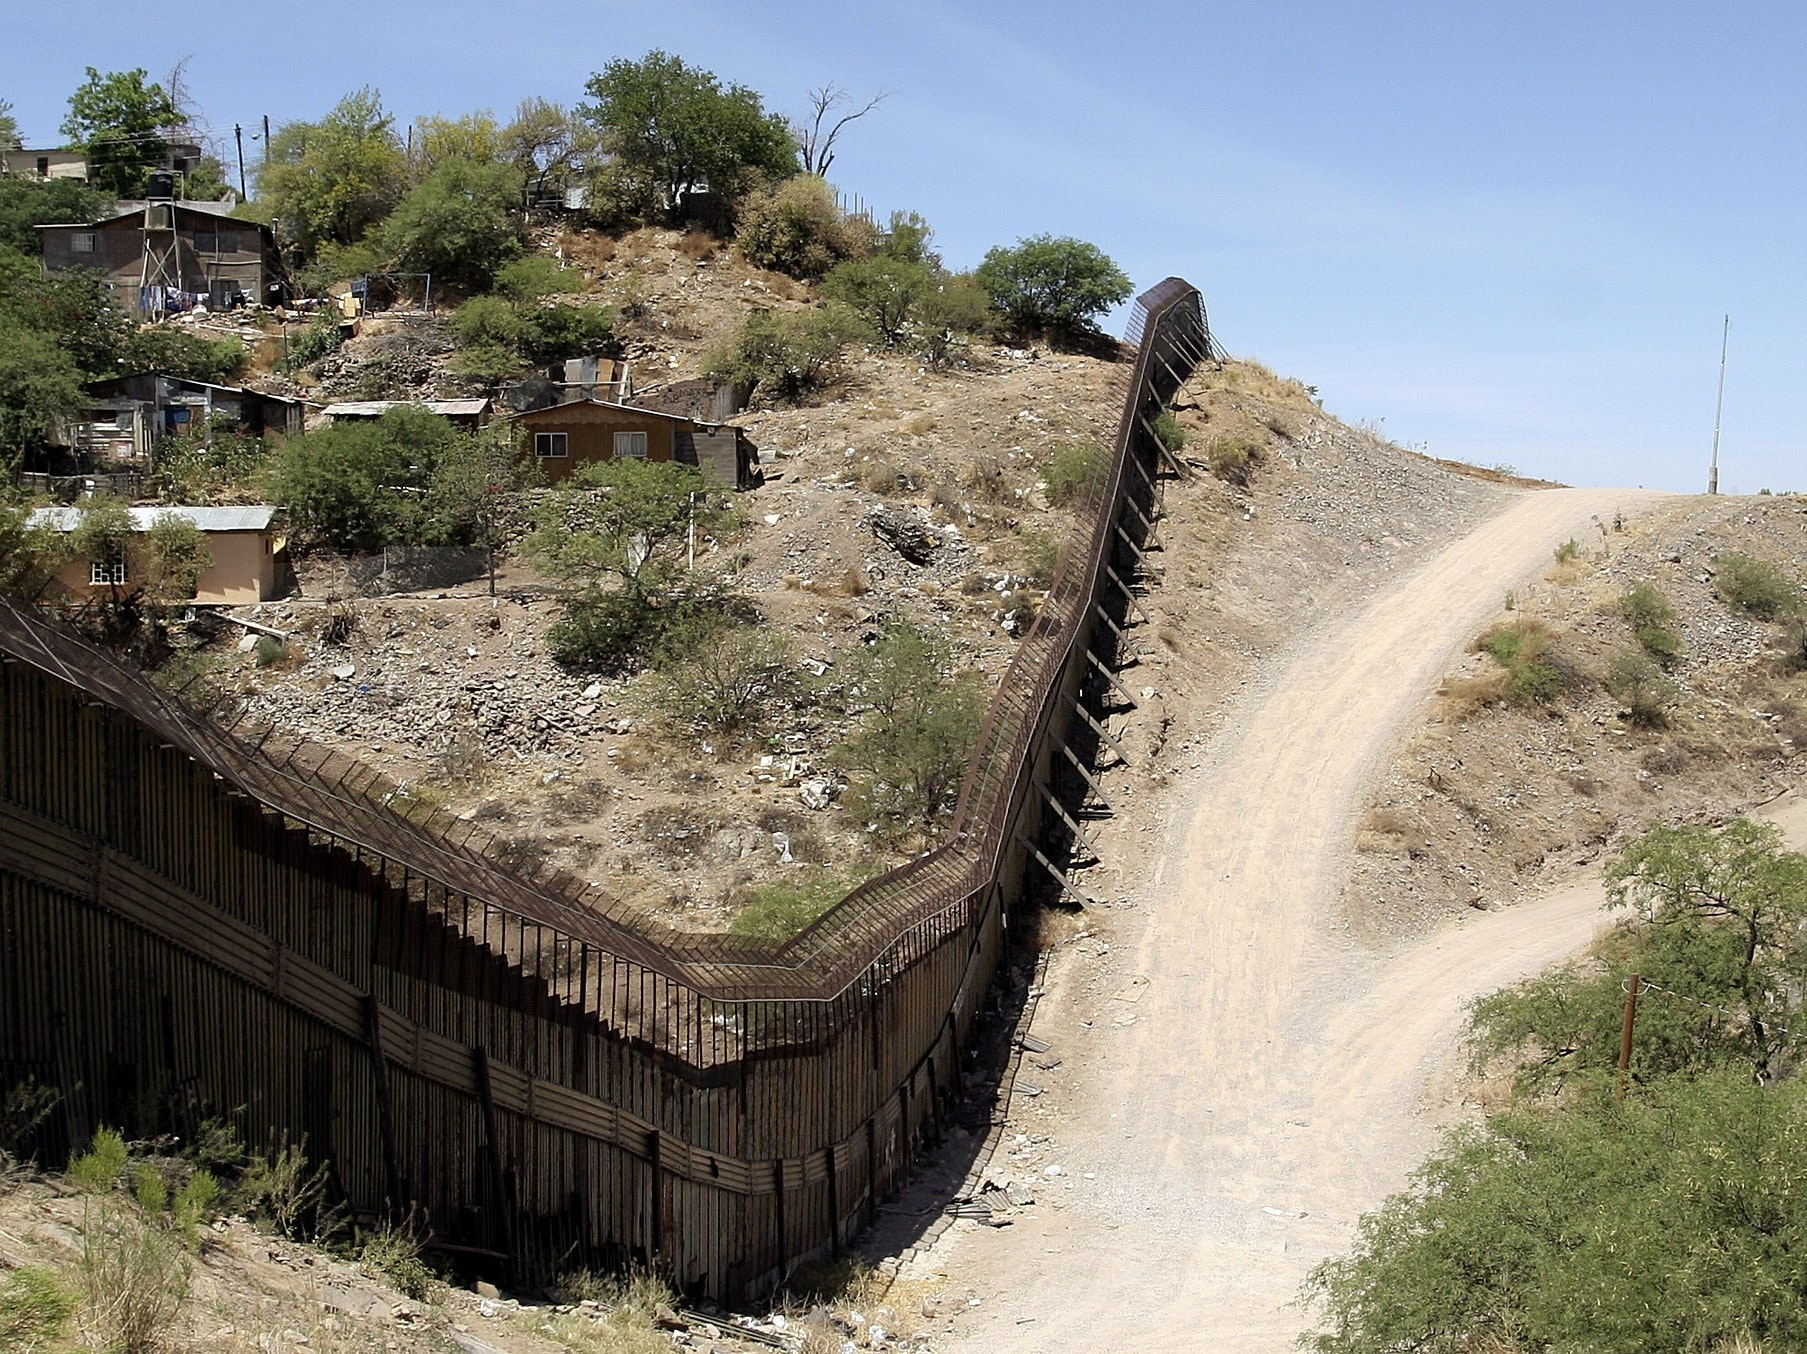 NOGALES, AZ -  MAY 14:  A steel wall separates Nogales, Sonora, Mexico (L) from a U.S. Border Patrol agent in his sector May 14, 2006 in Nogales, Arizona. U.S. President George W. Bush will address the nation on the immigration issue May 15.  (Photo by Jeff Topping/Getty Images)